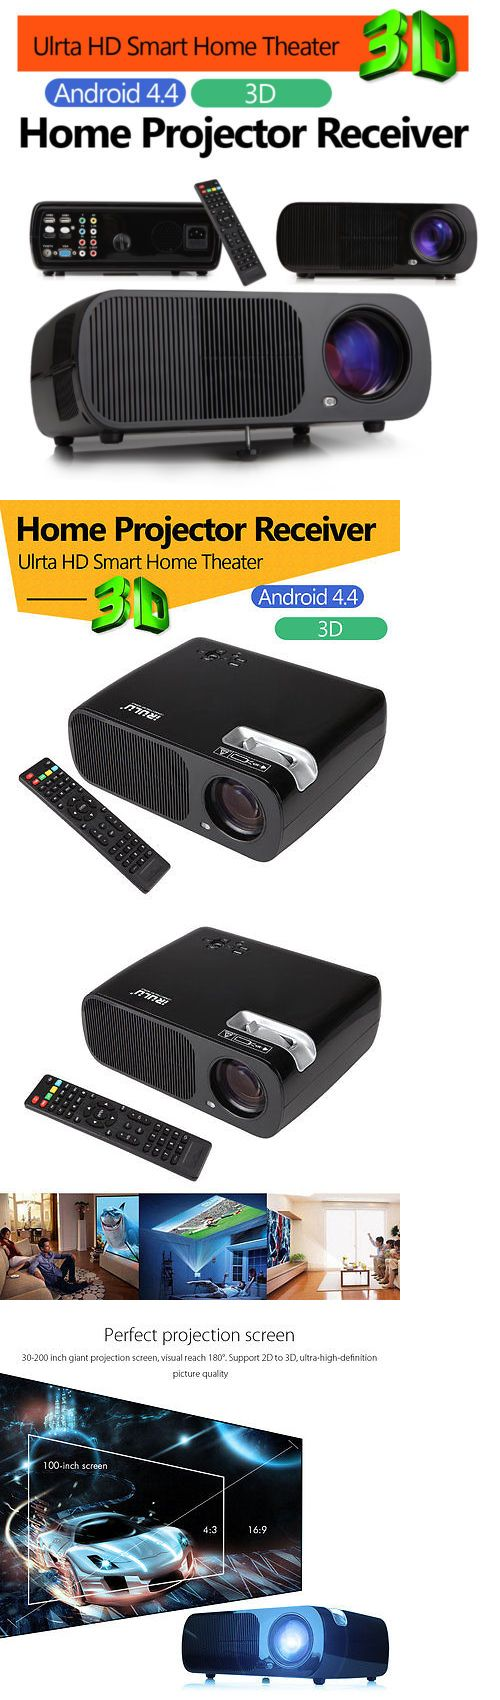 Home Theater Projectors: Irulu 1080P Hd Led Lcd 3D Projector Home Theater Cinema Hdmi/Usb/Sd/Dtv/Av/Vga BUY IT NOW ONLY: $117.59